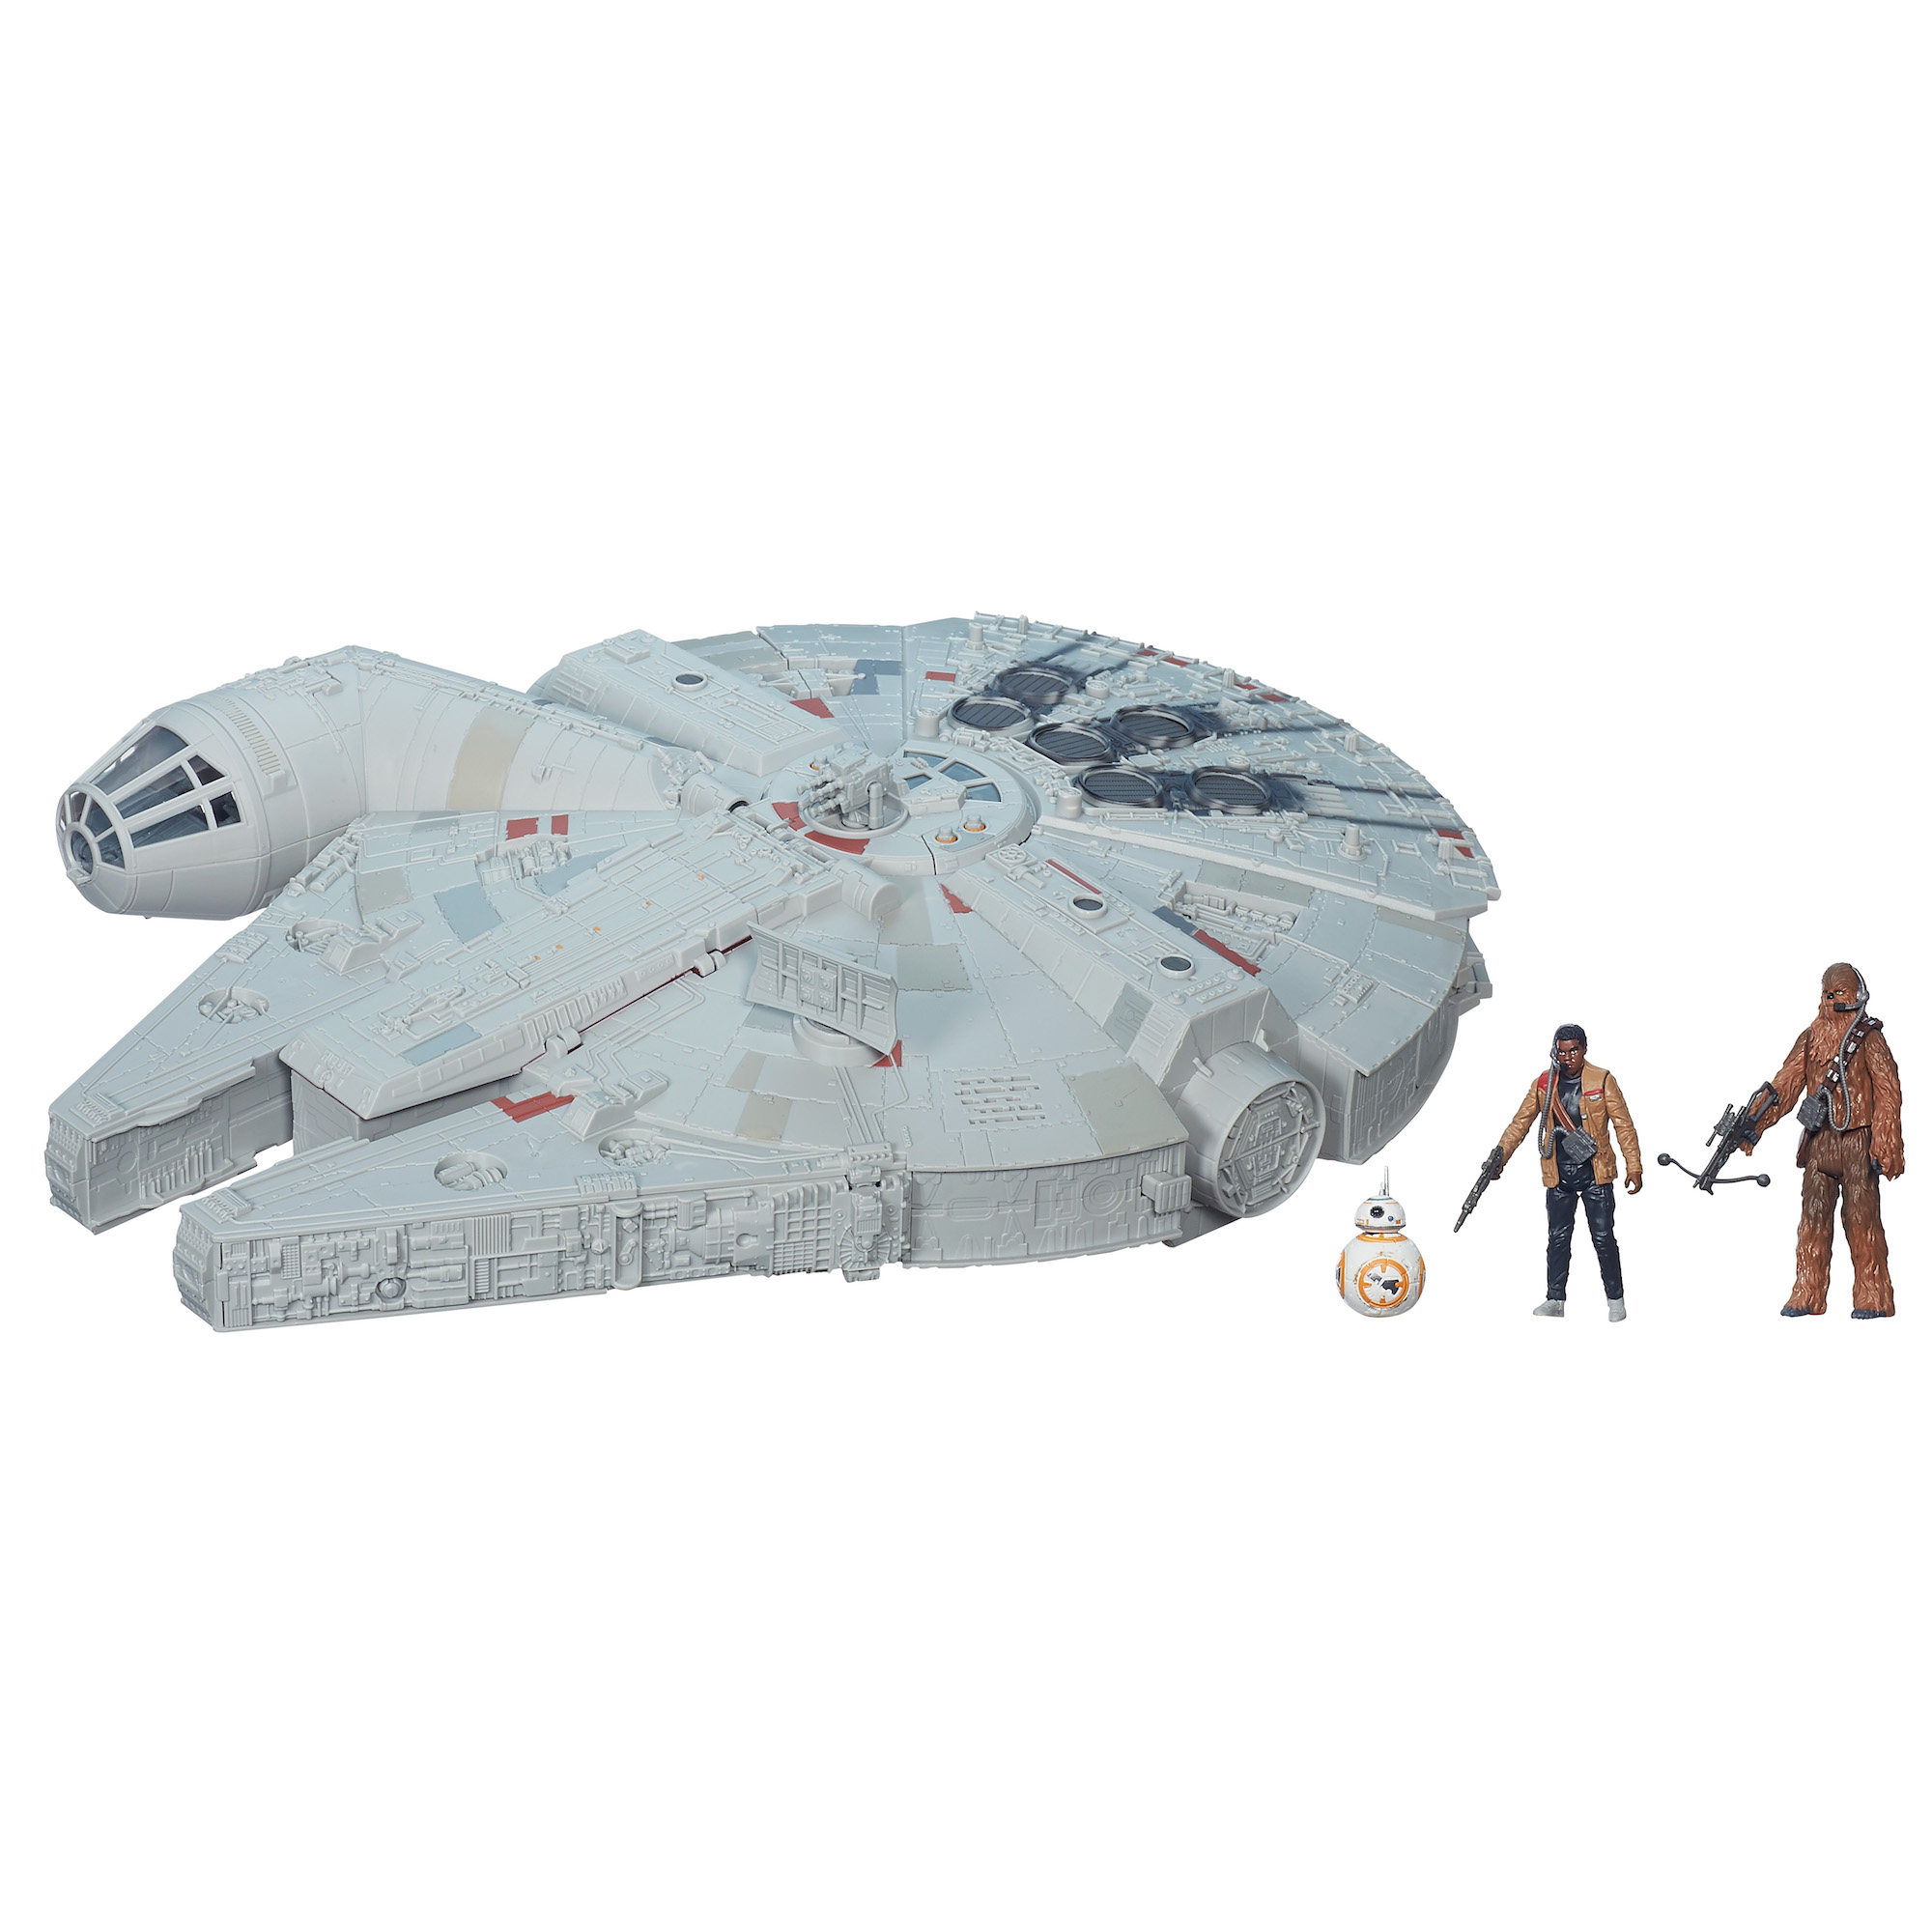 b3678as00 630509346554 Star Wars The Force Awakens Millennium Falcon by Hasbro